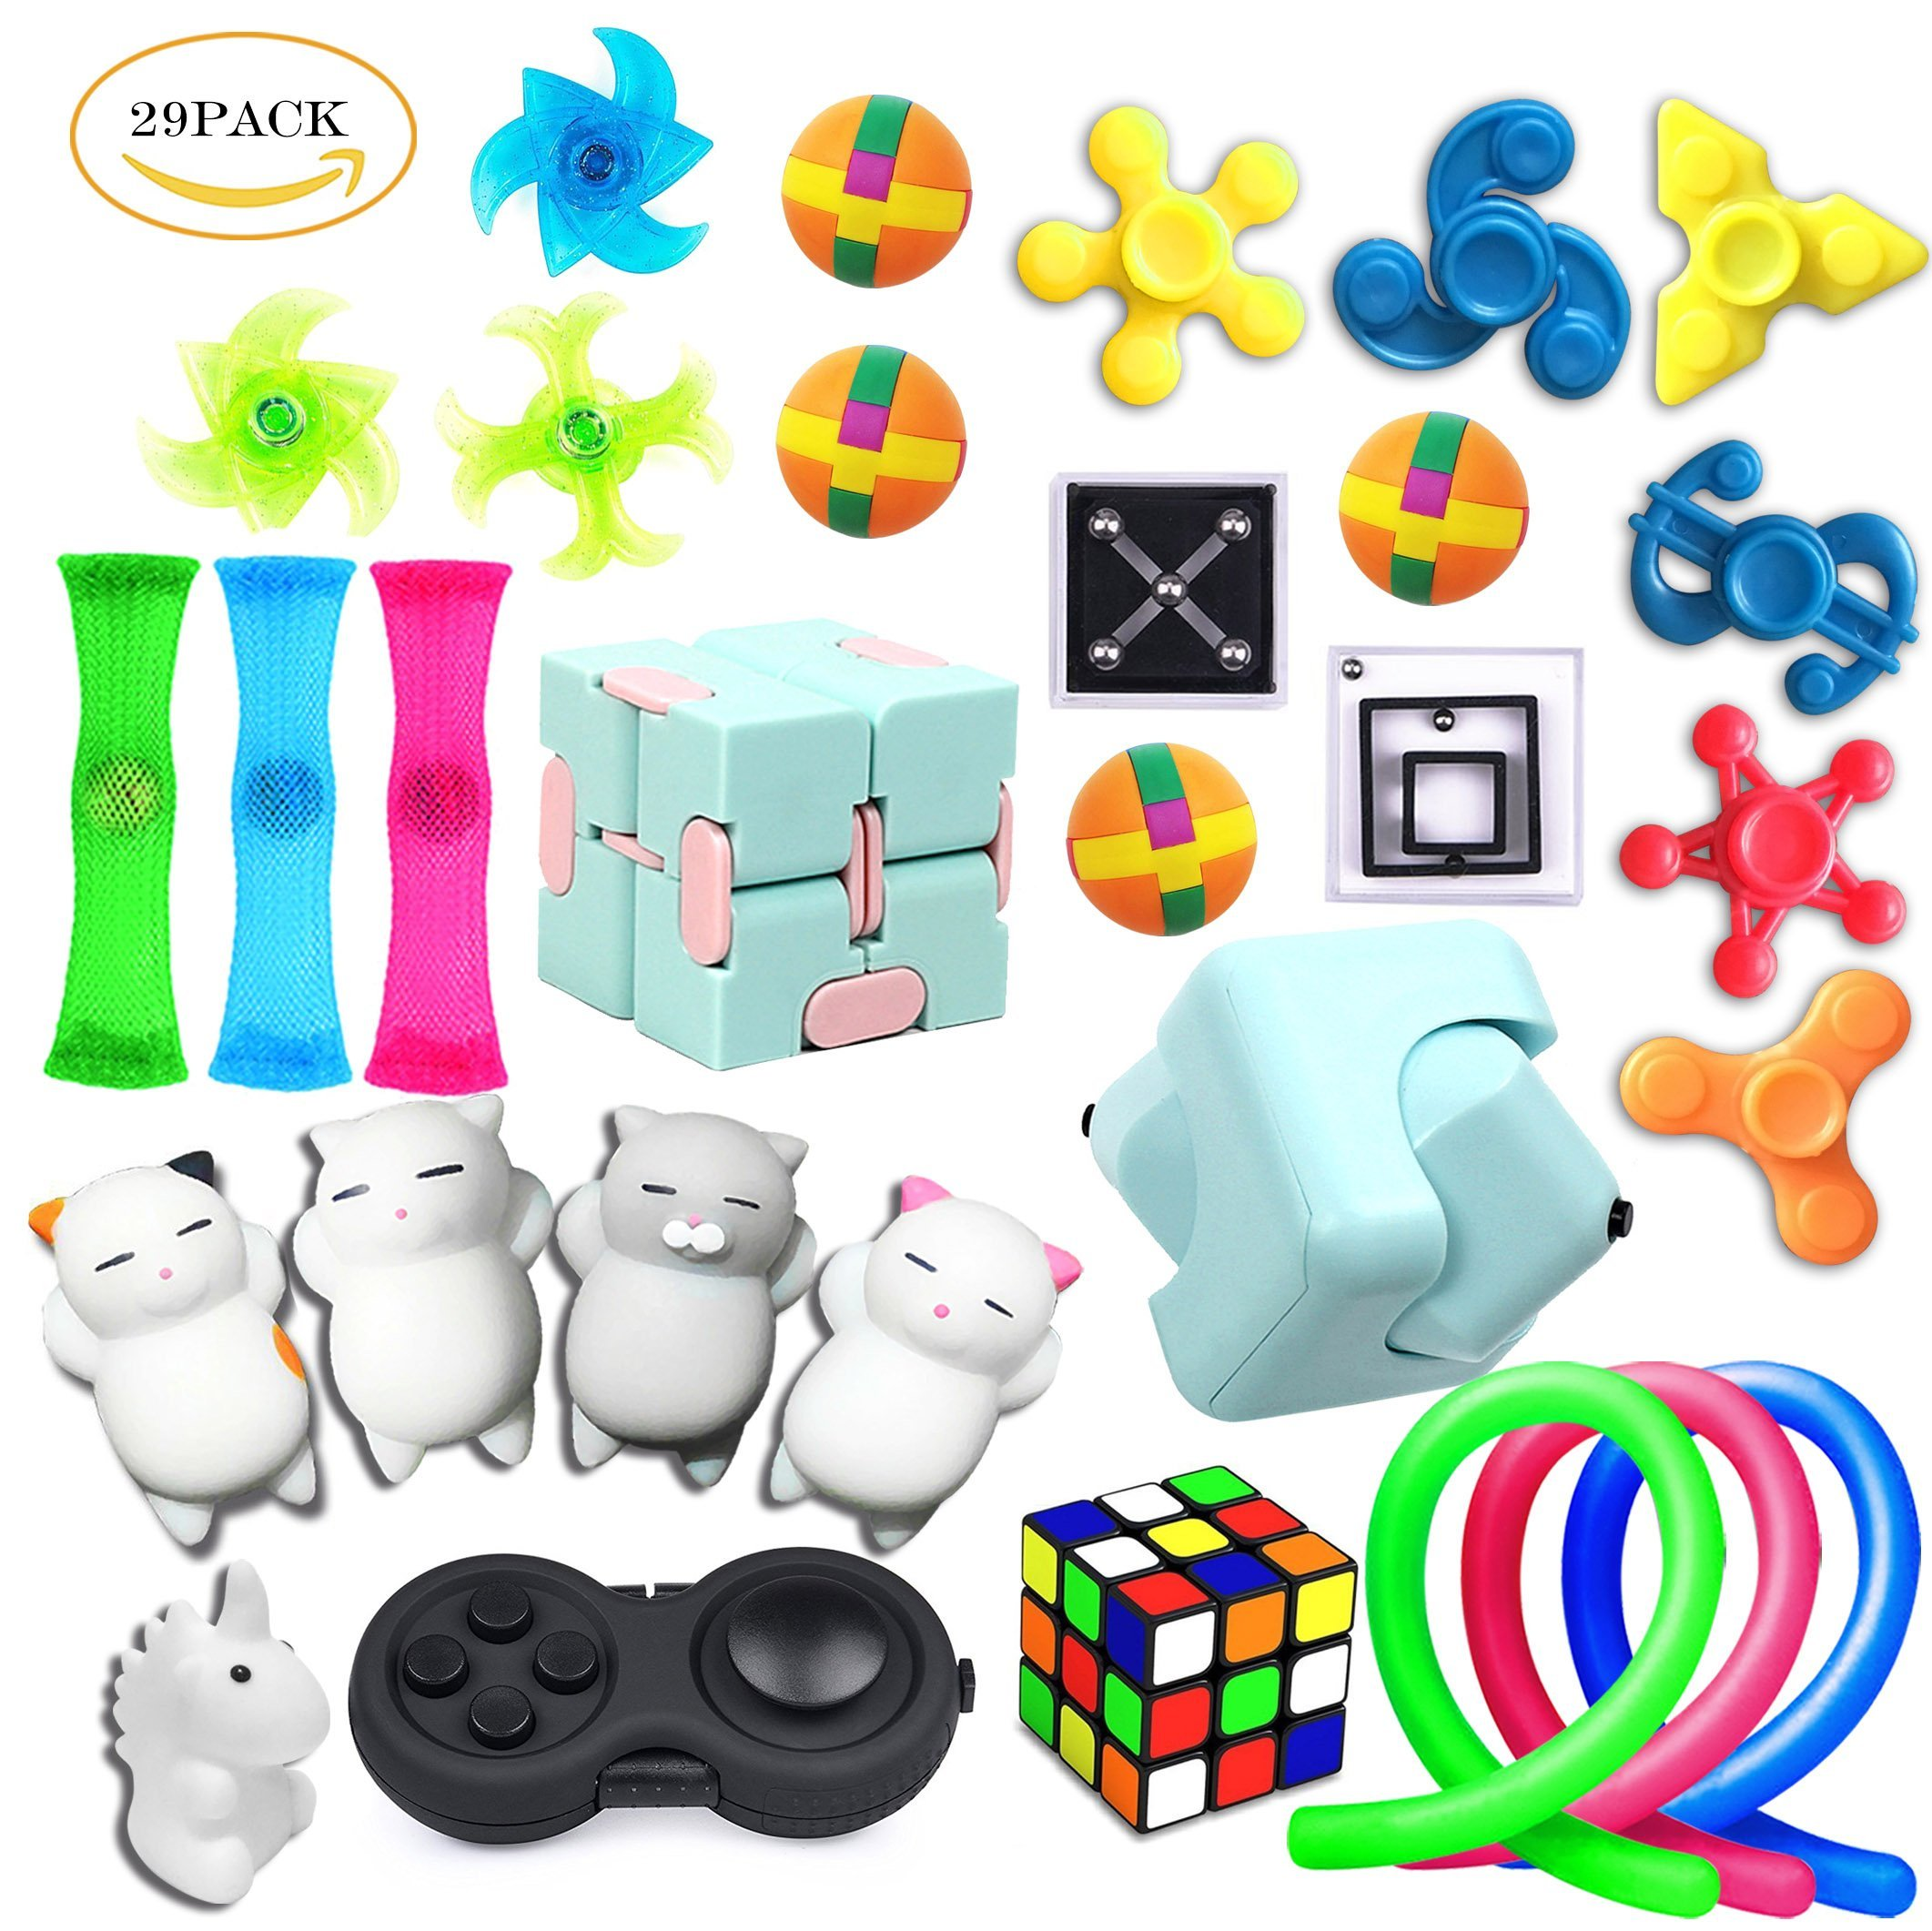 29 Pack Sensory Toys Set, Relieves Stress and Anxiety Fidget Toy for Children Adults, Special Toys Assortment for Birthday Party Favors, Classroom Rewards Prizes, Carnival, Piñata Goodie Bag Fillers